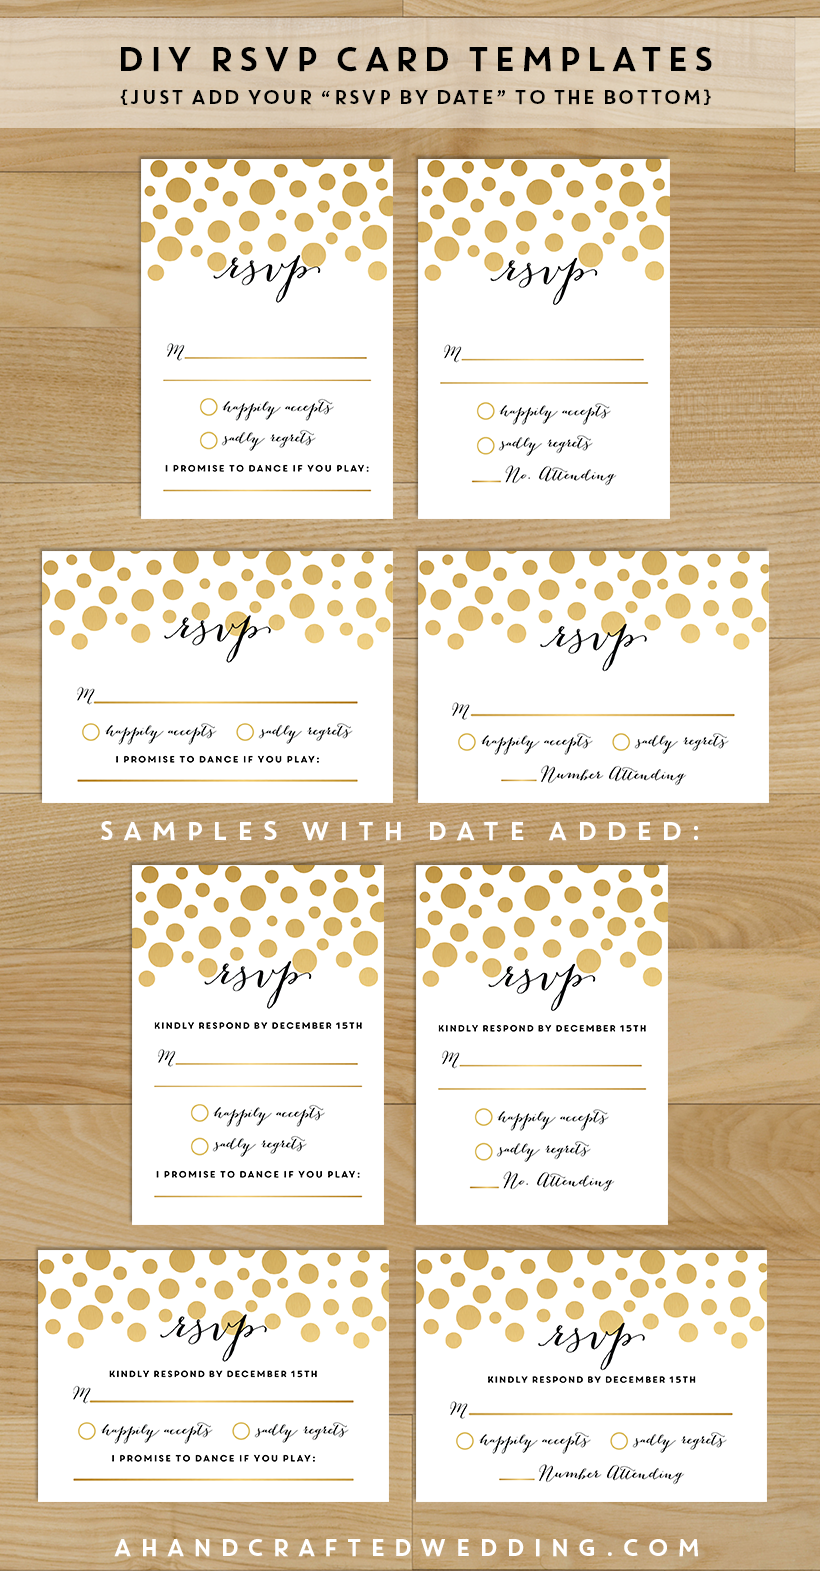 Save Money On Your Wedding Invites With These Printable Templates You Can Customize Yourself